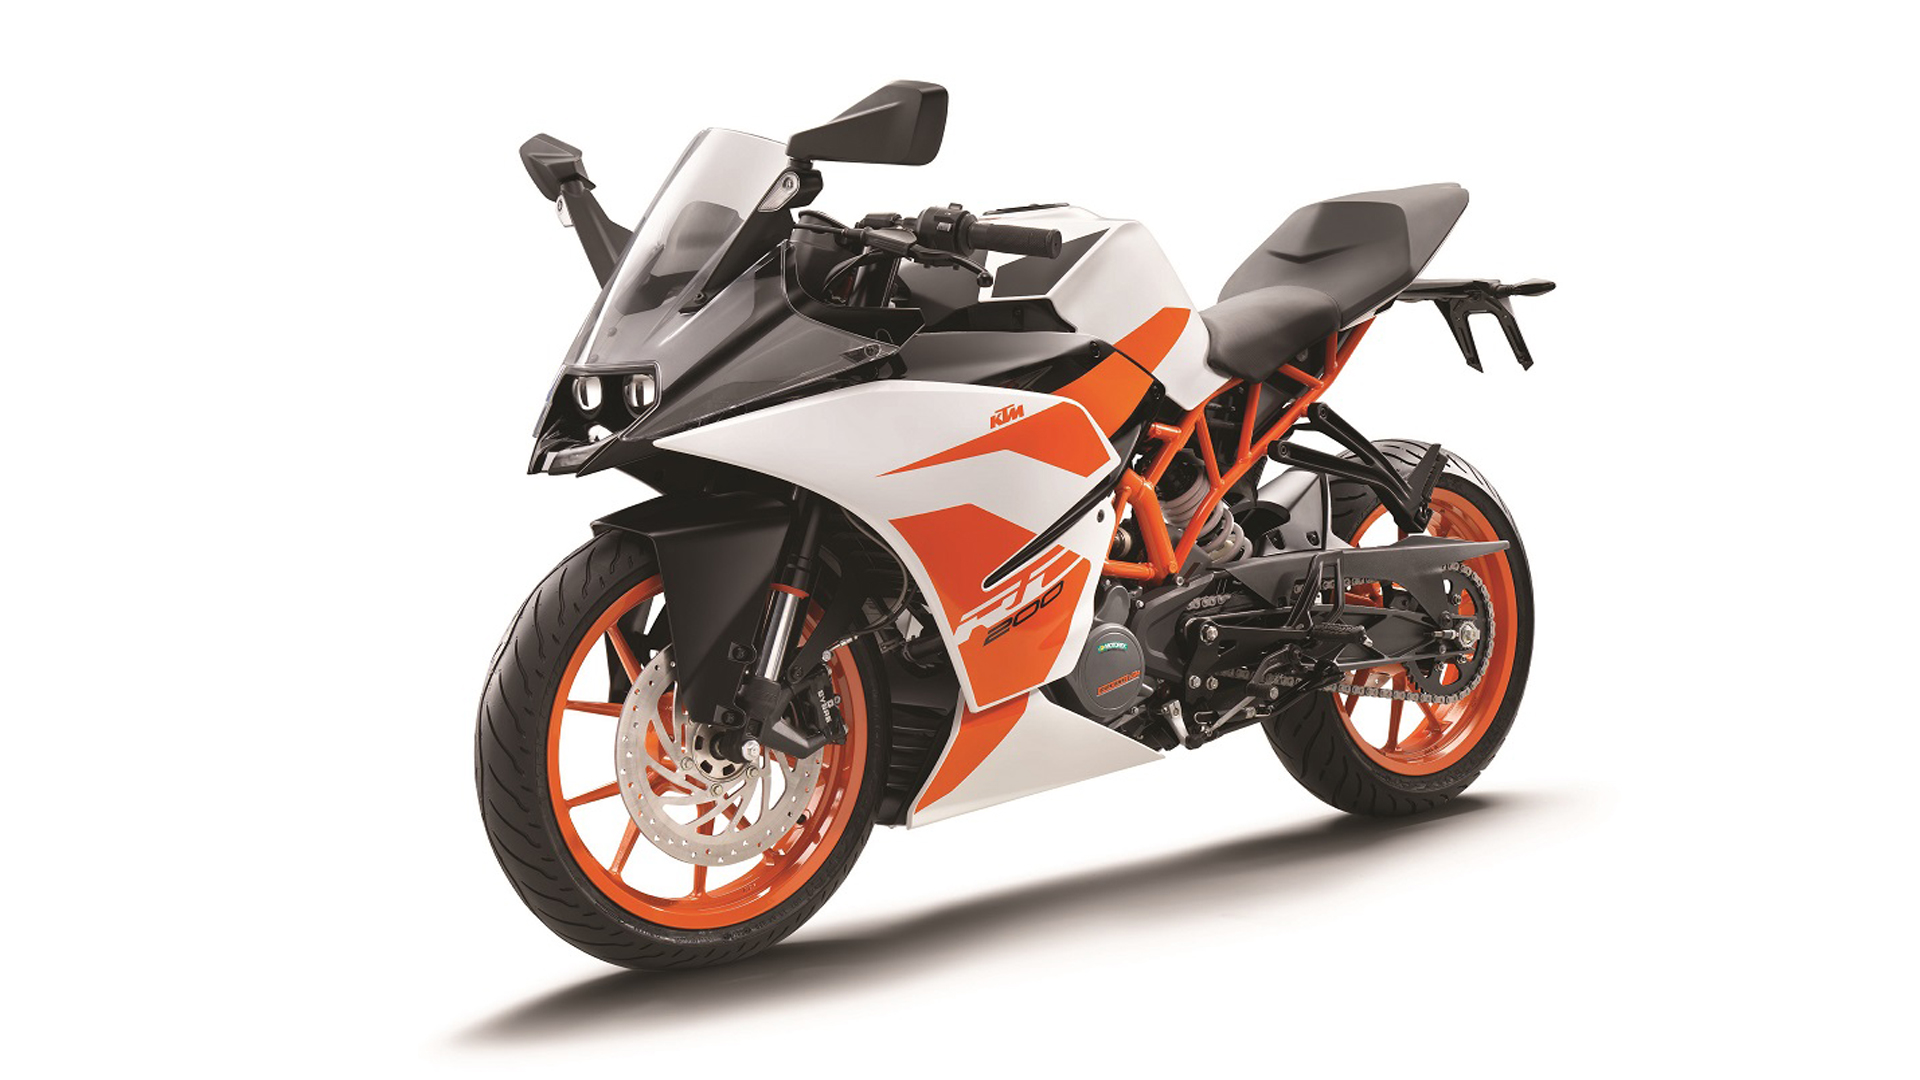 KTM RC 200 2017 - Price, Mileage, Reviews, Specification, Gallery ...